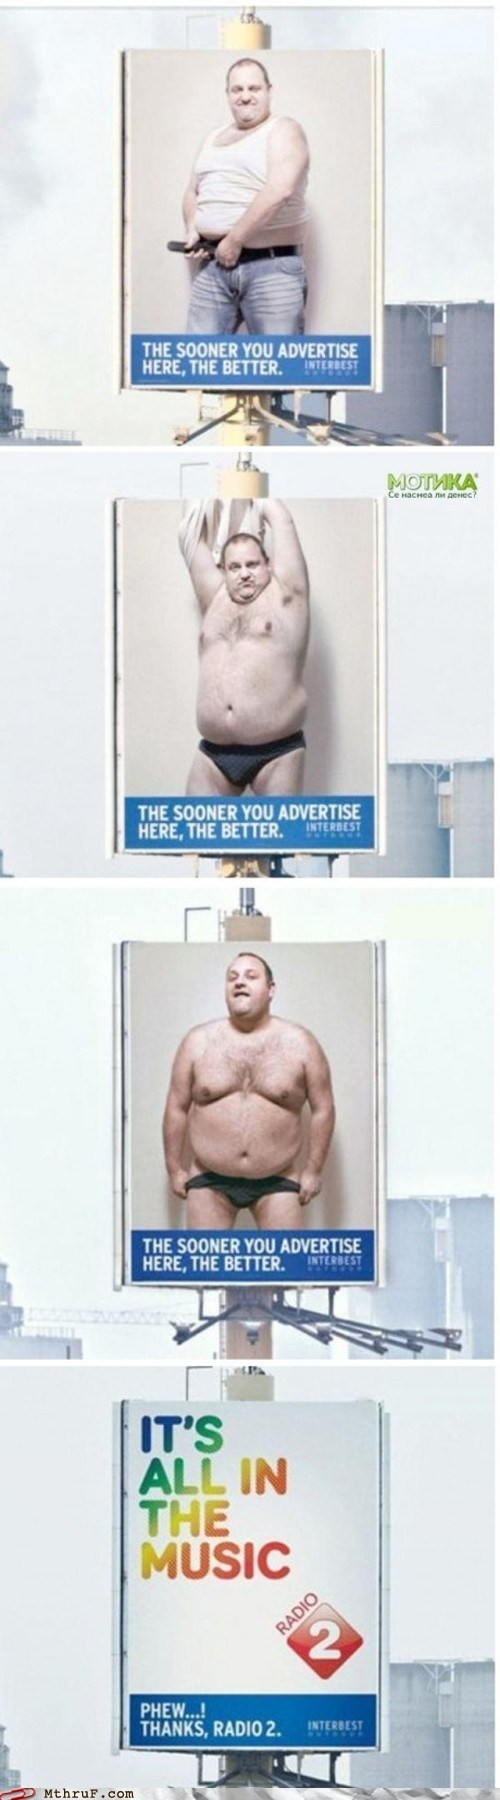 advertisement,advertising,billboard,fat guy,fat man